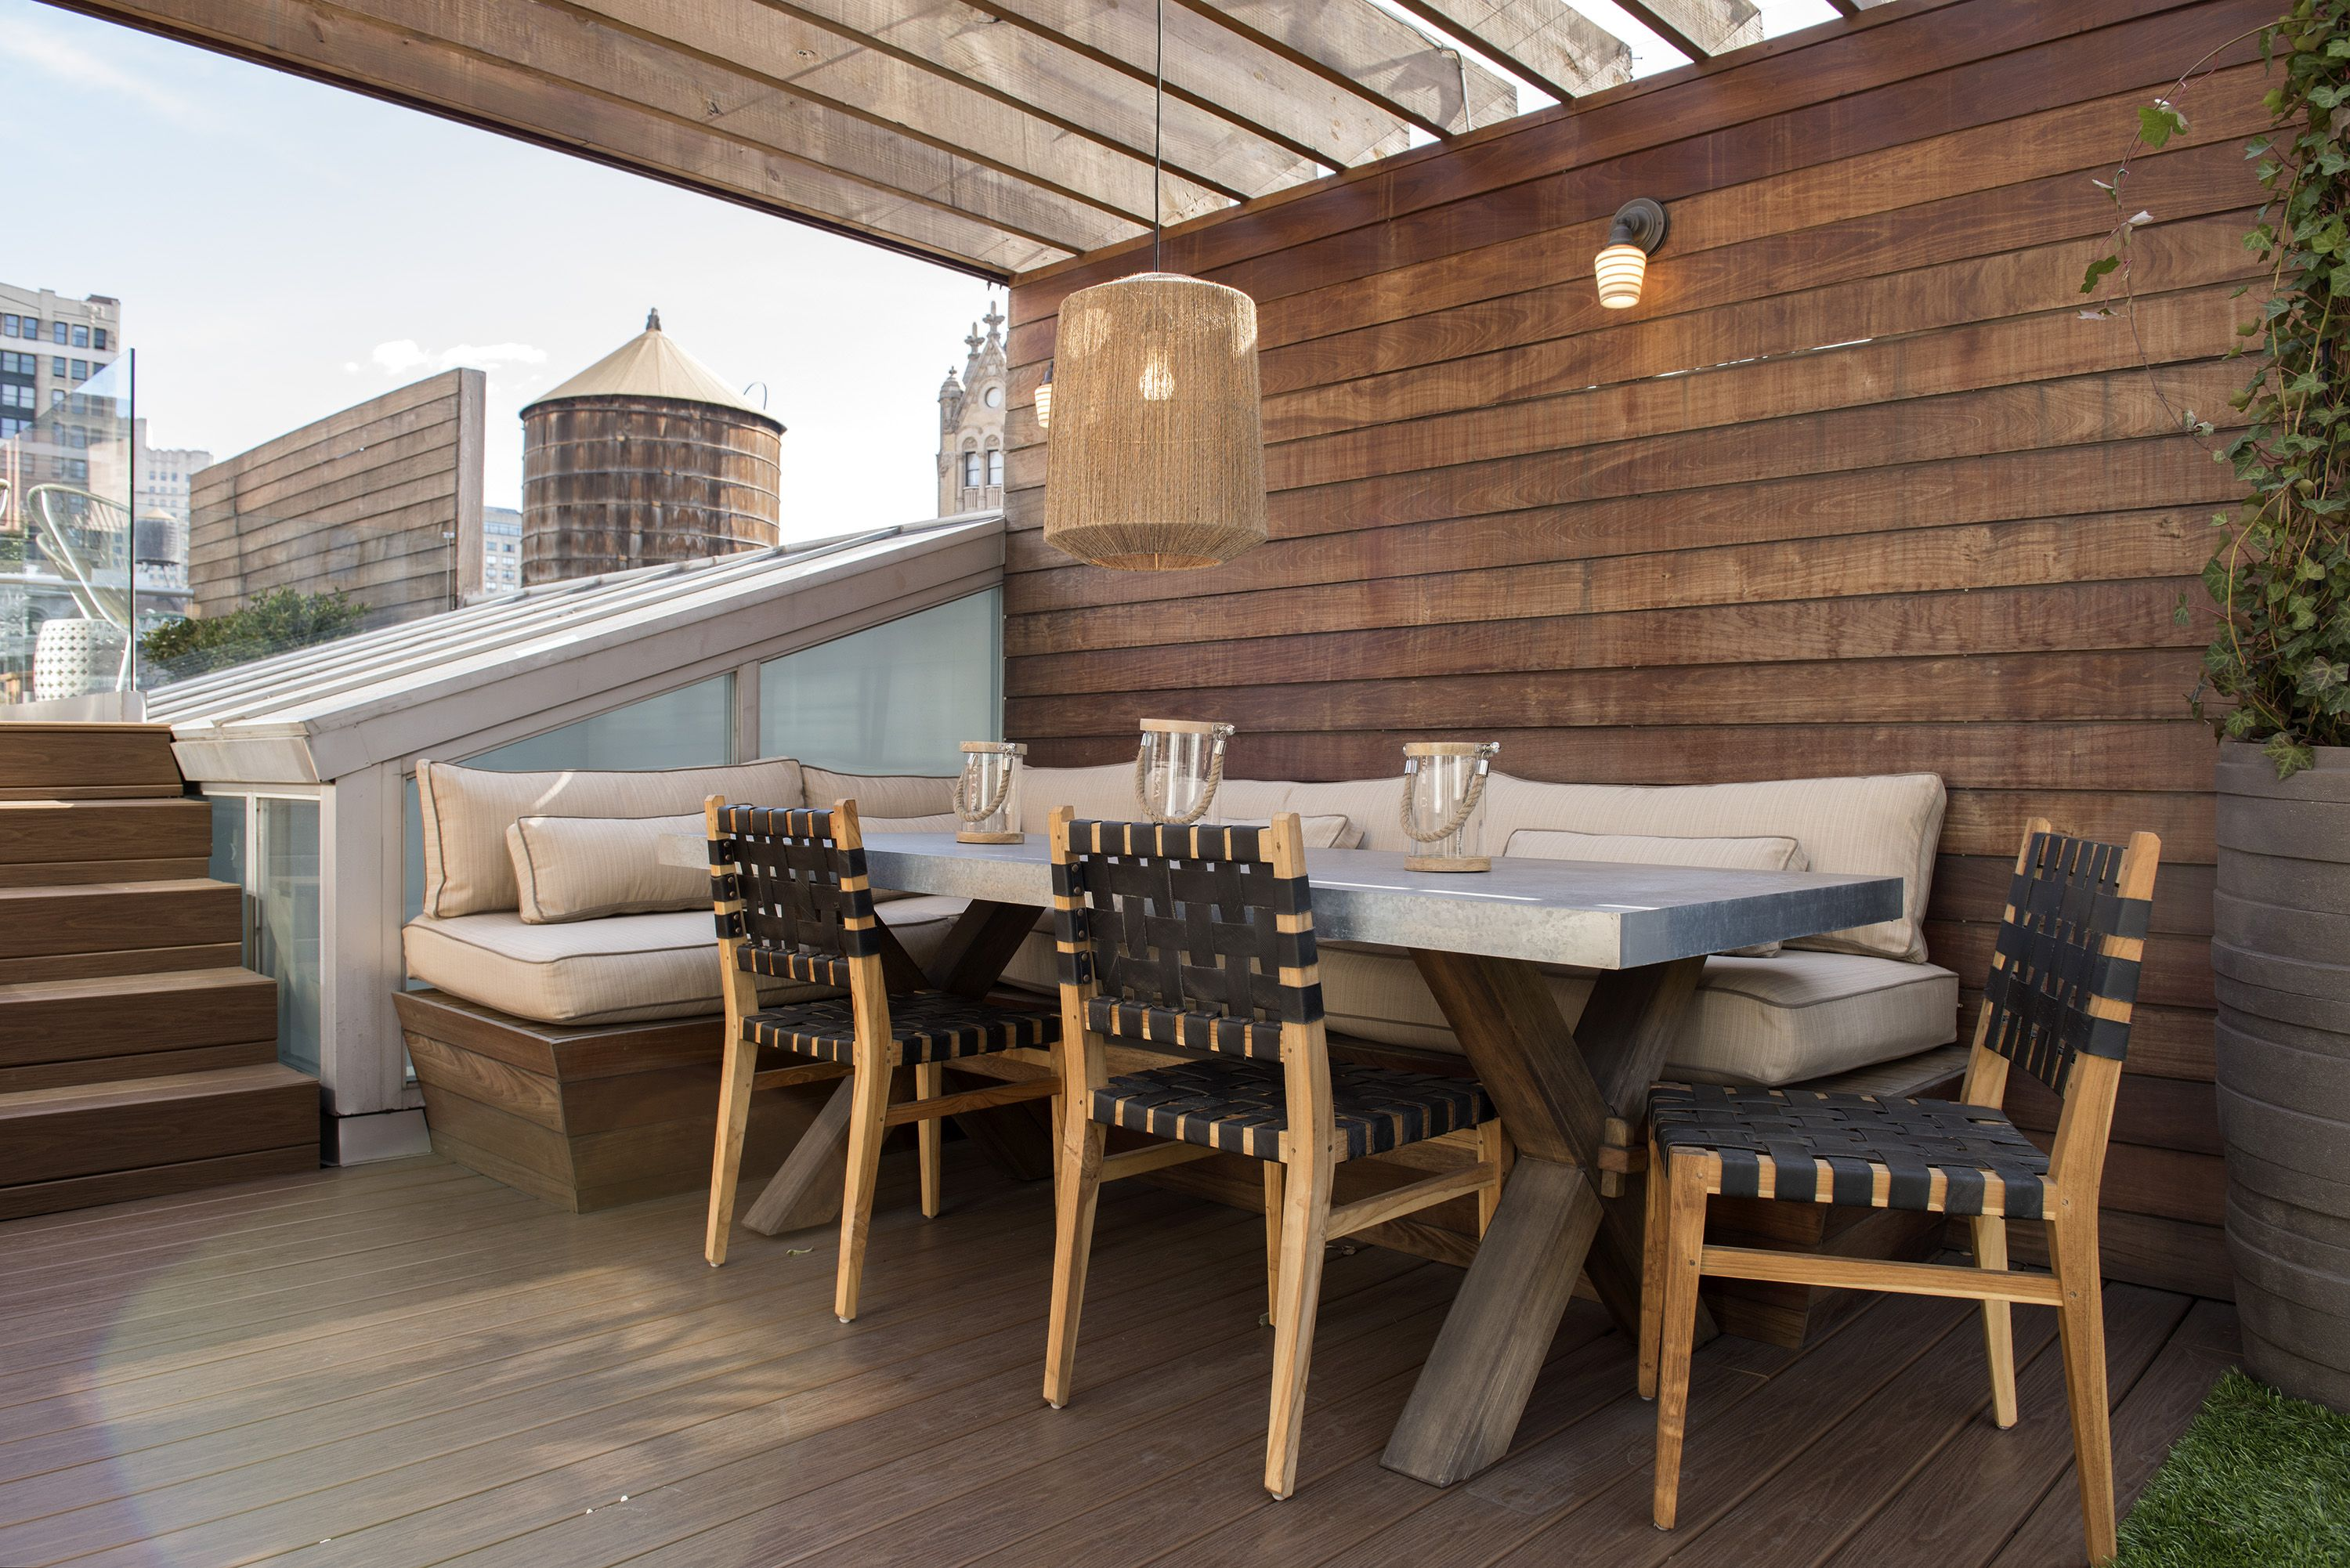 Rooftop Dining Is Made Comfortable With A Trimmed Sofa Banquette